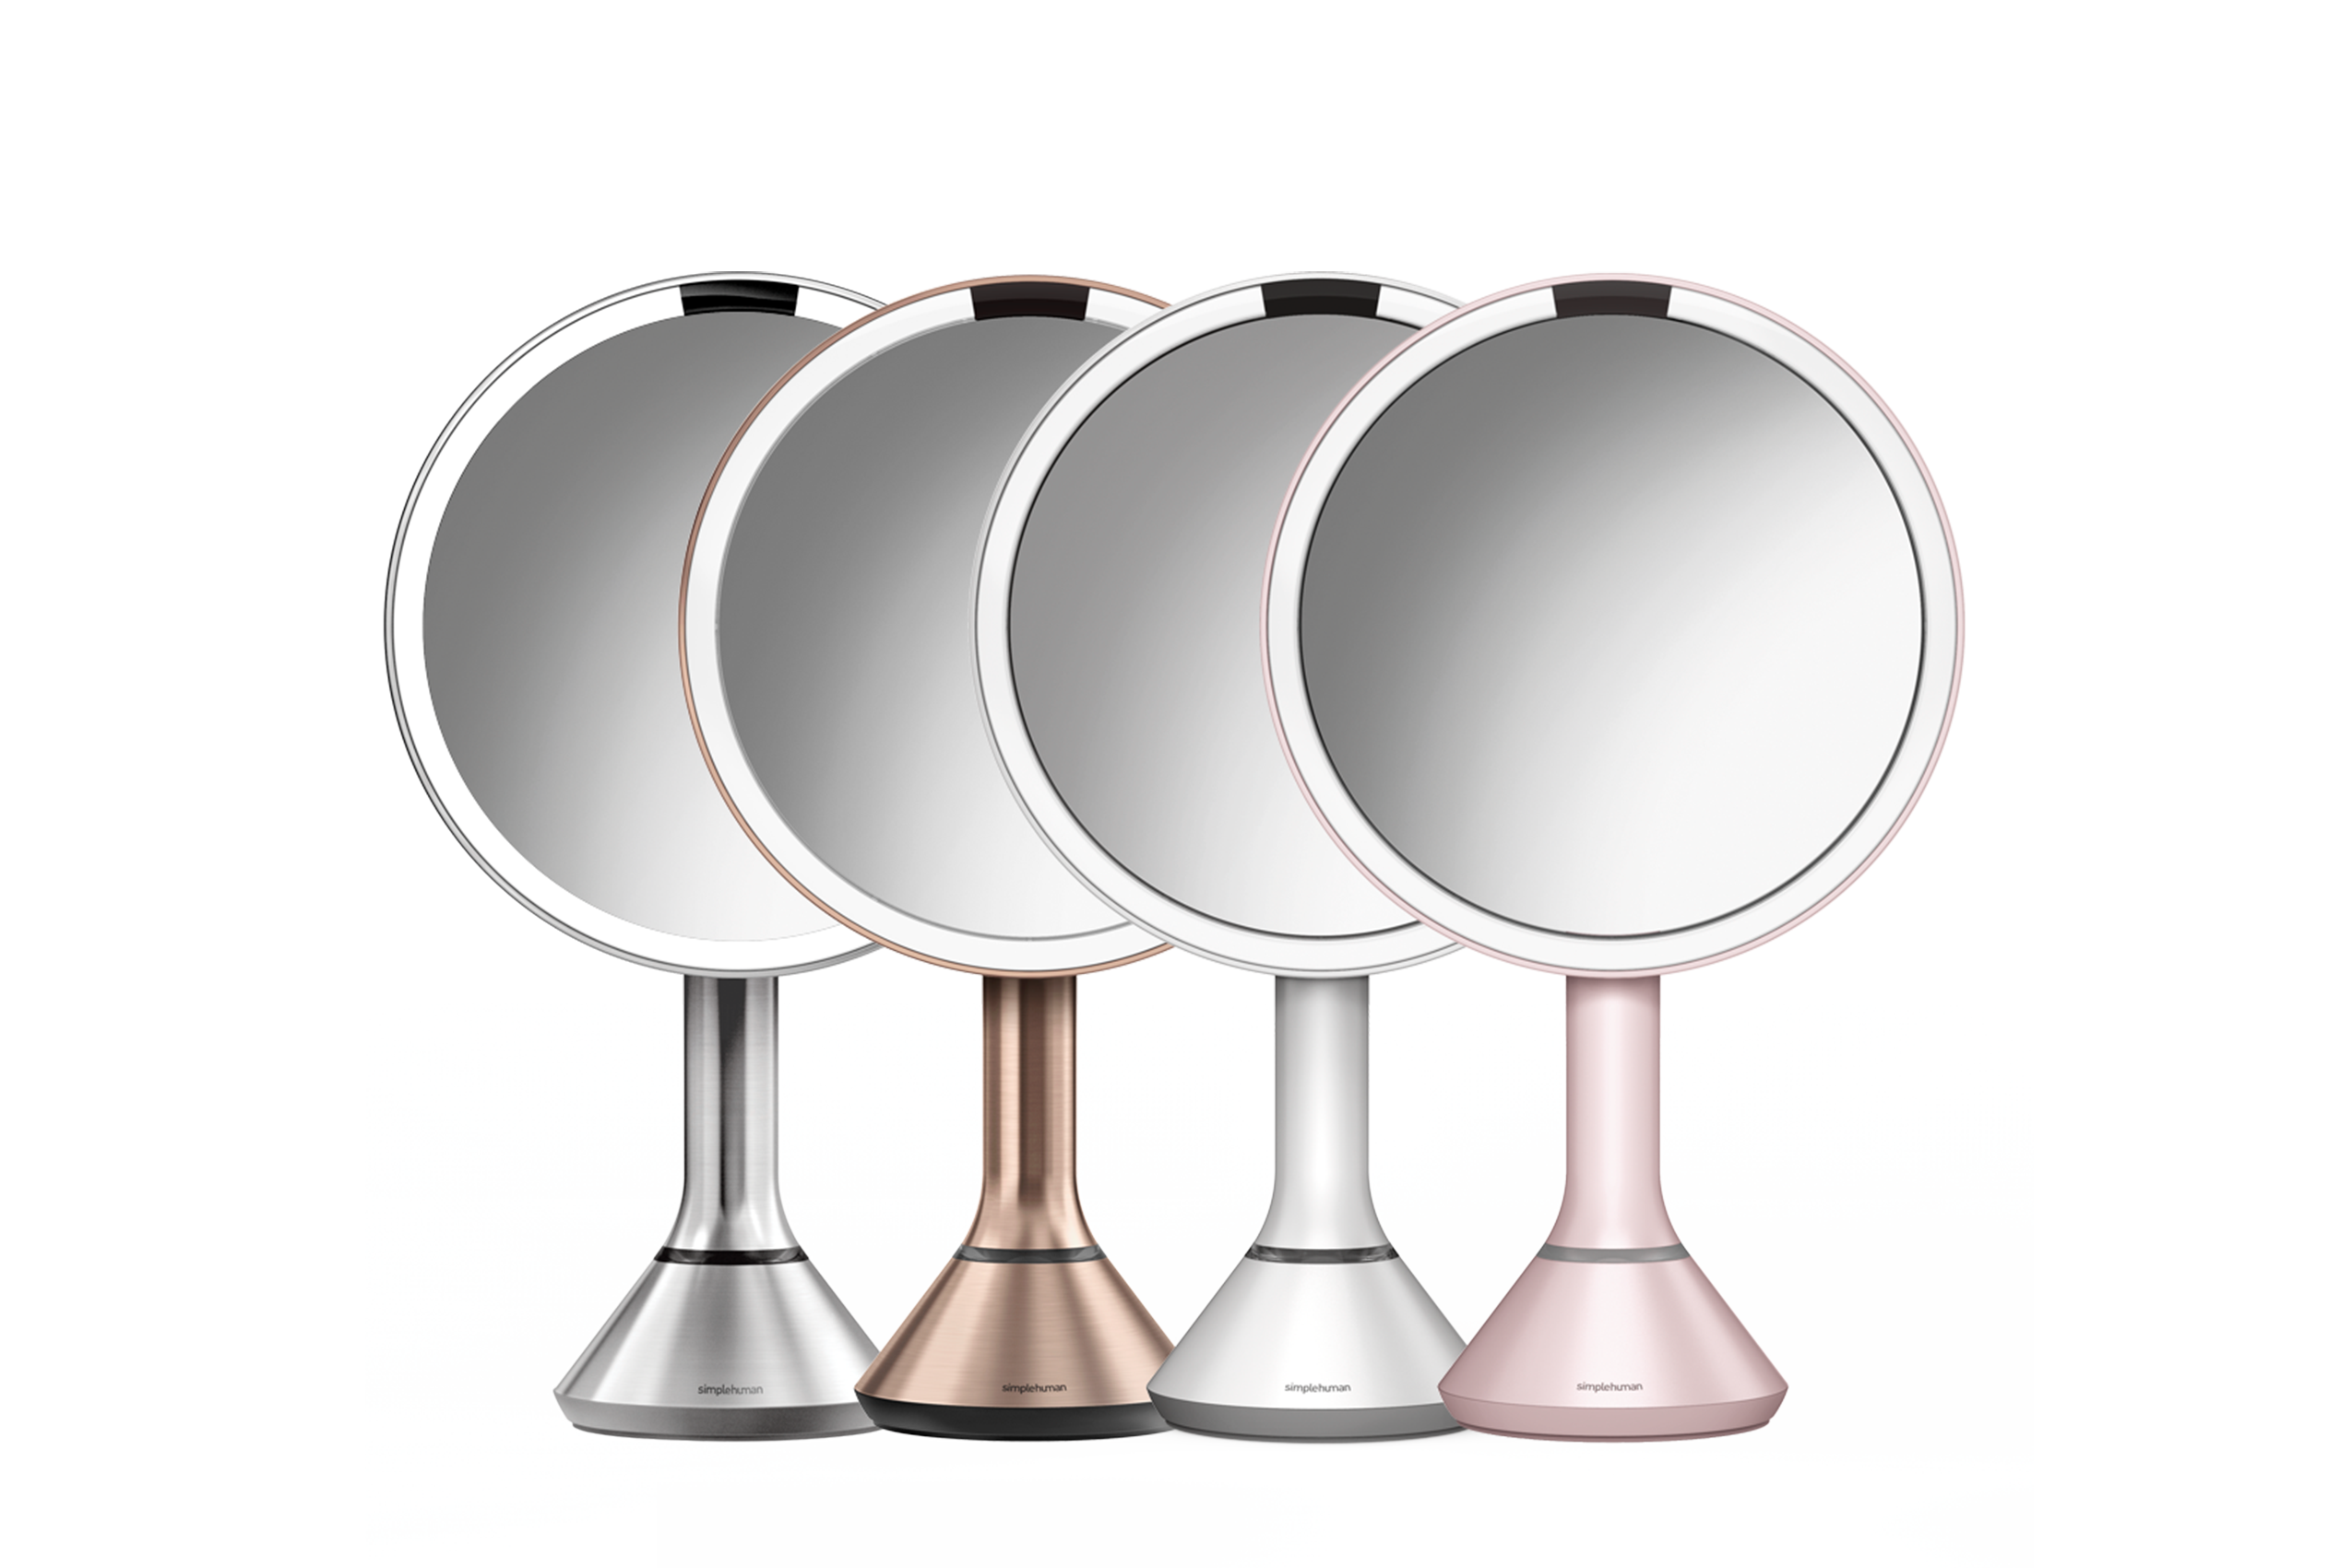 simplehuman smart mirrors.